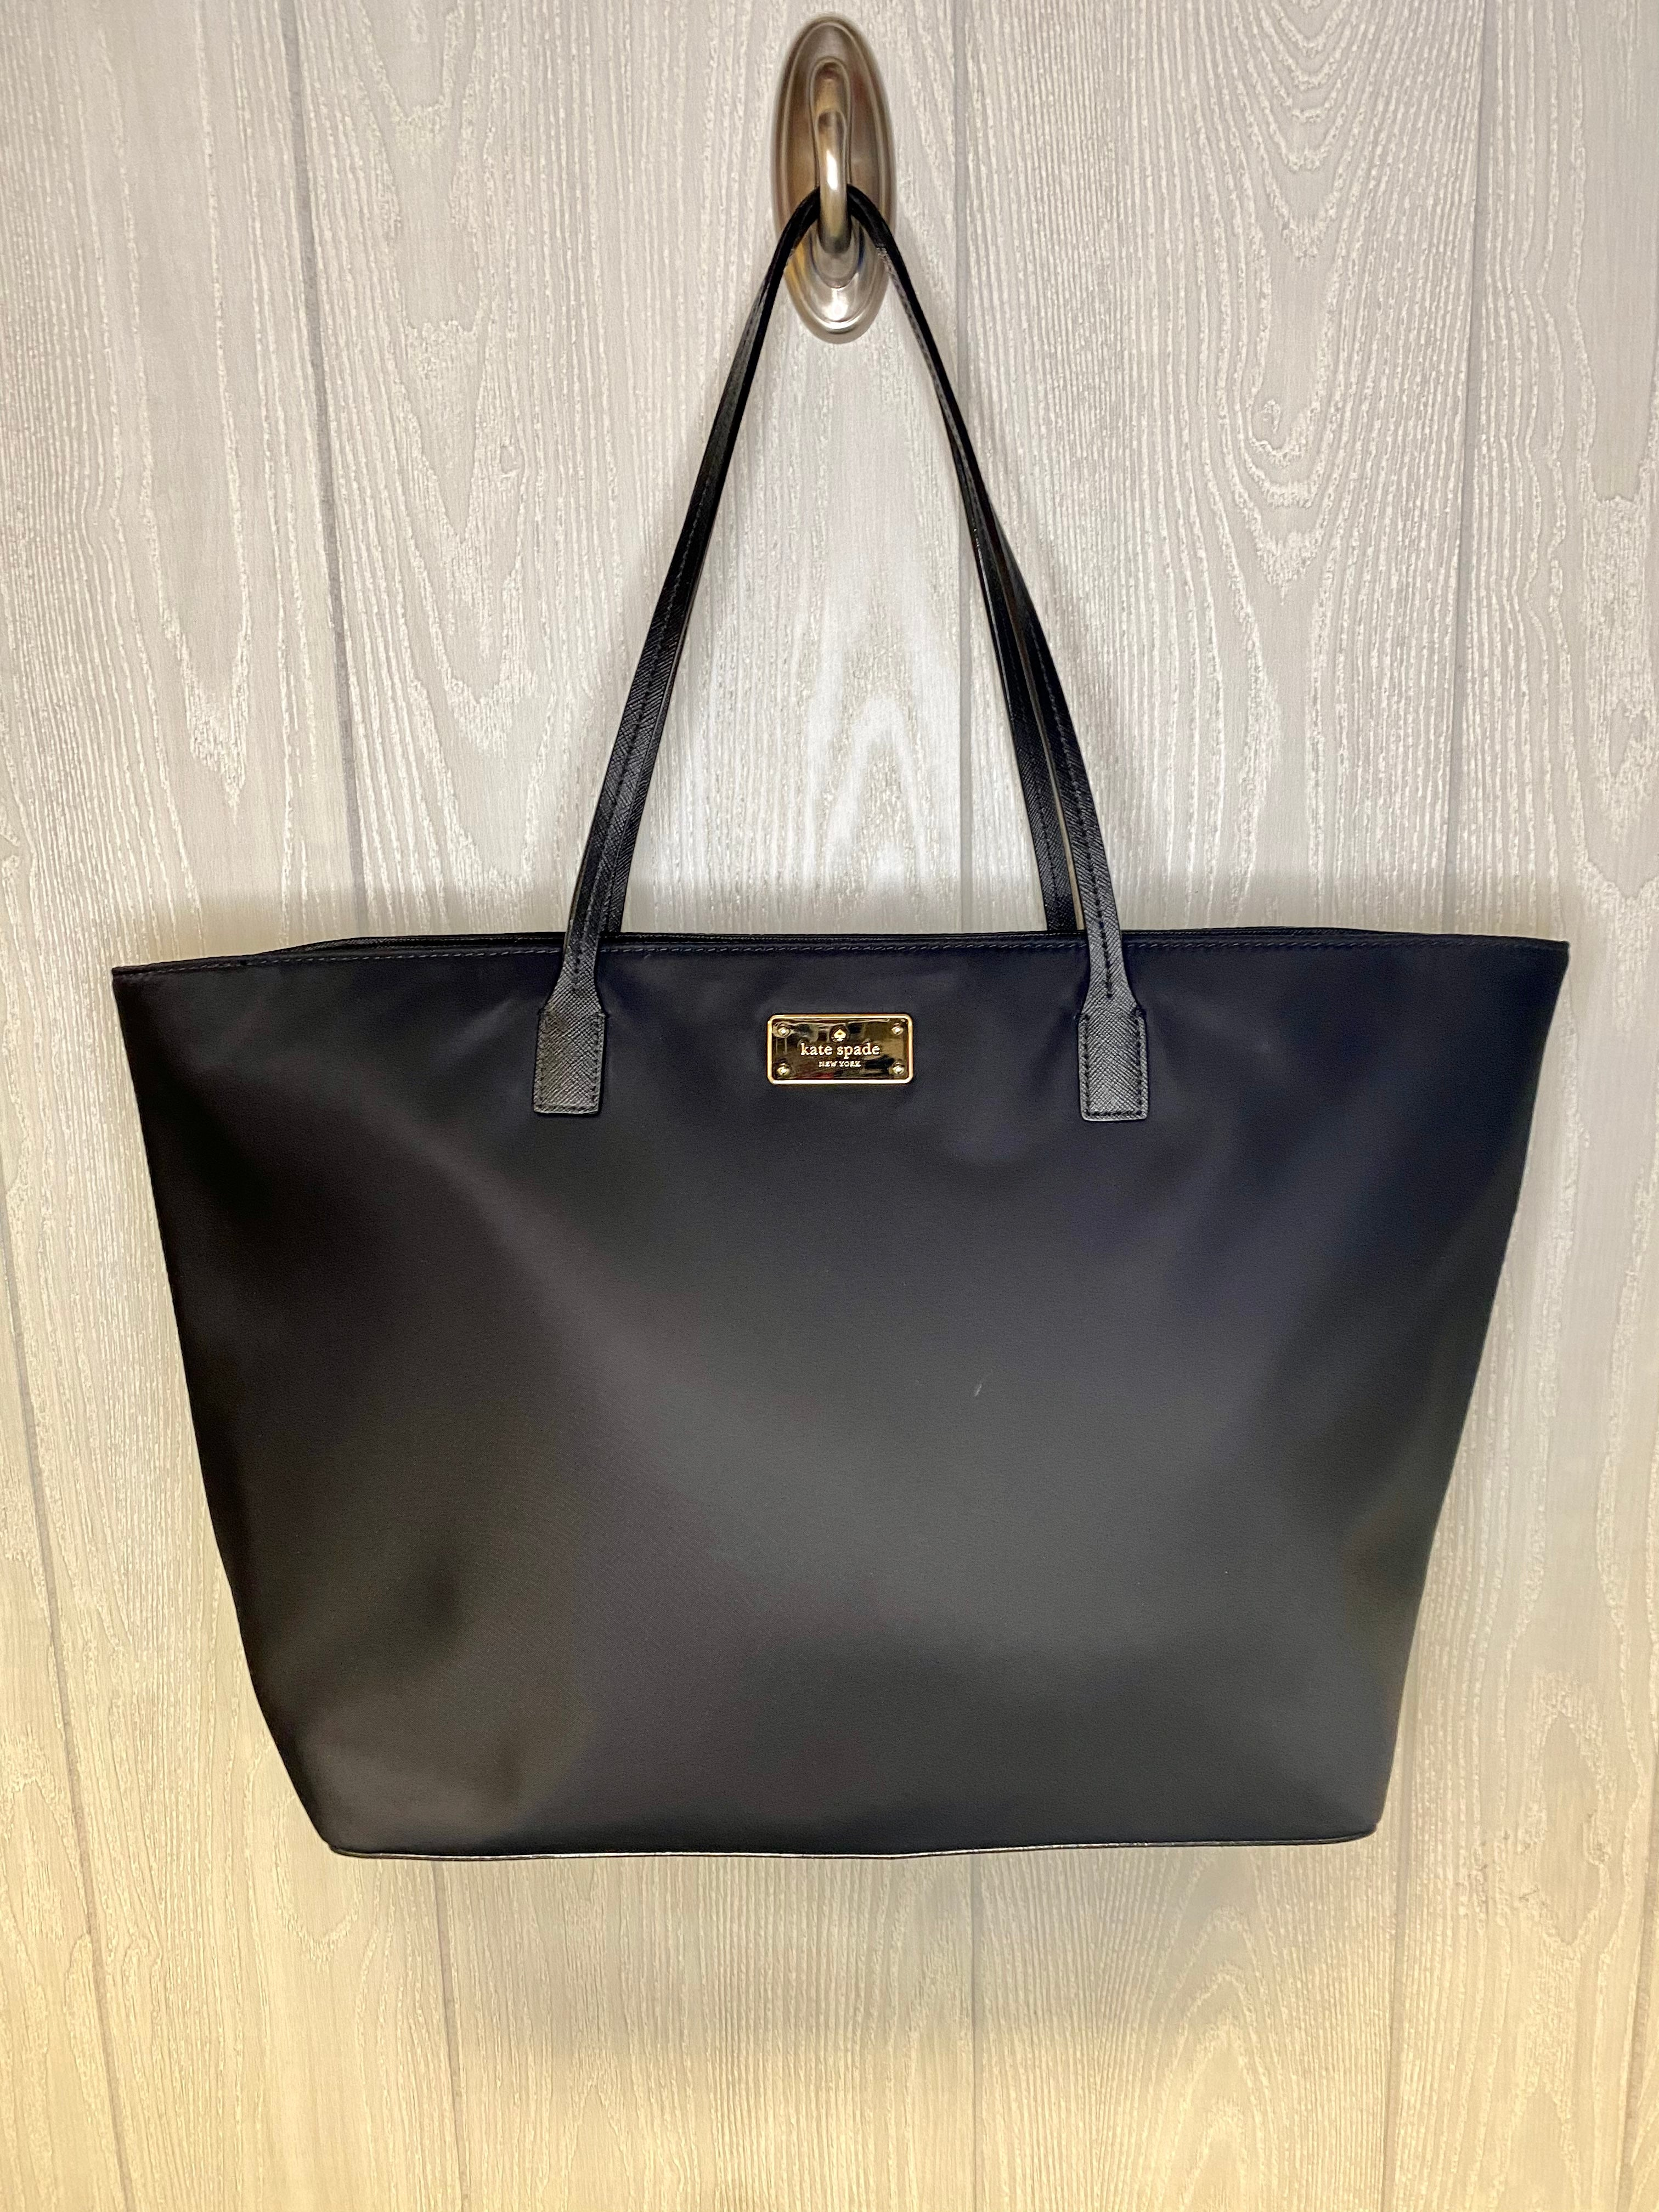 Primary Photo - BRAND: KATE SPADE <BR>STYLE: HANDBAG DESIGNER <BR>COLOR: BLACK <BR>SIZE: MEDIUM <BR>OTHER INFO: BLAKE AVENUE MARGARETA  NO RETURNS <BR>SKU: 245-245202-178